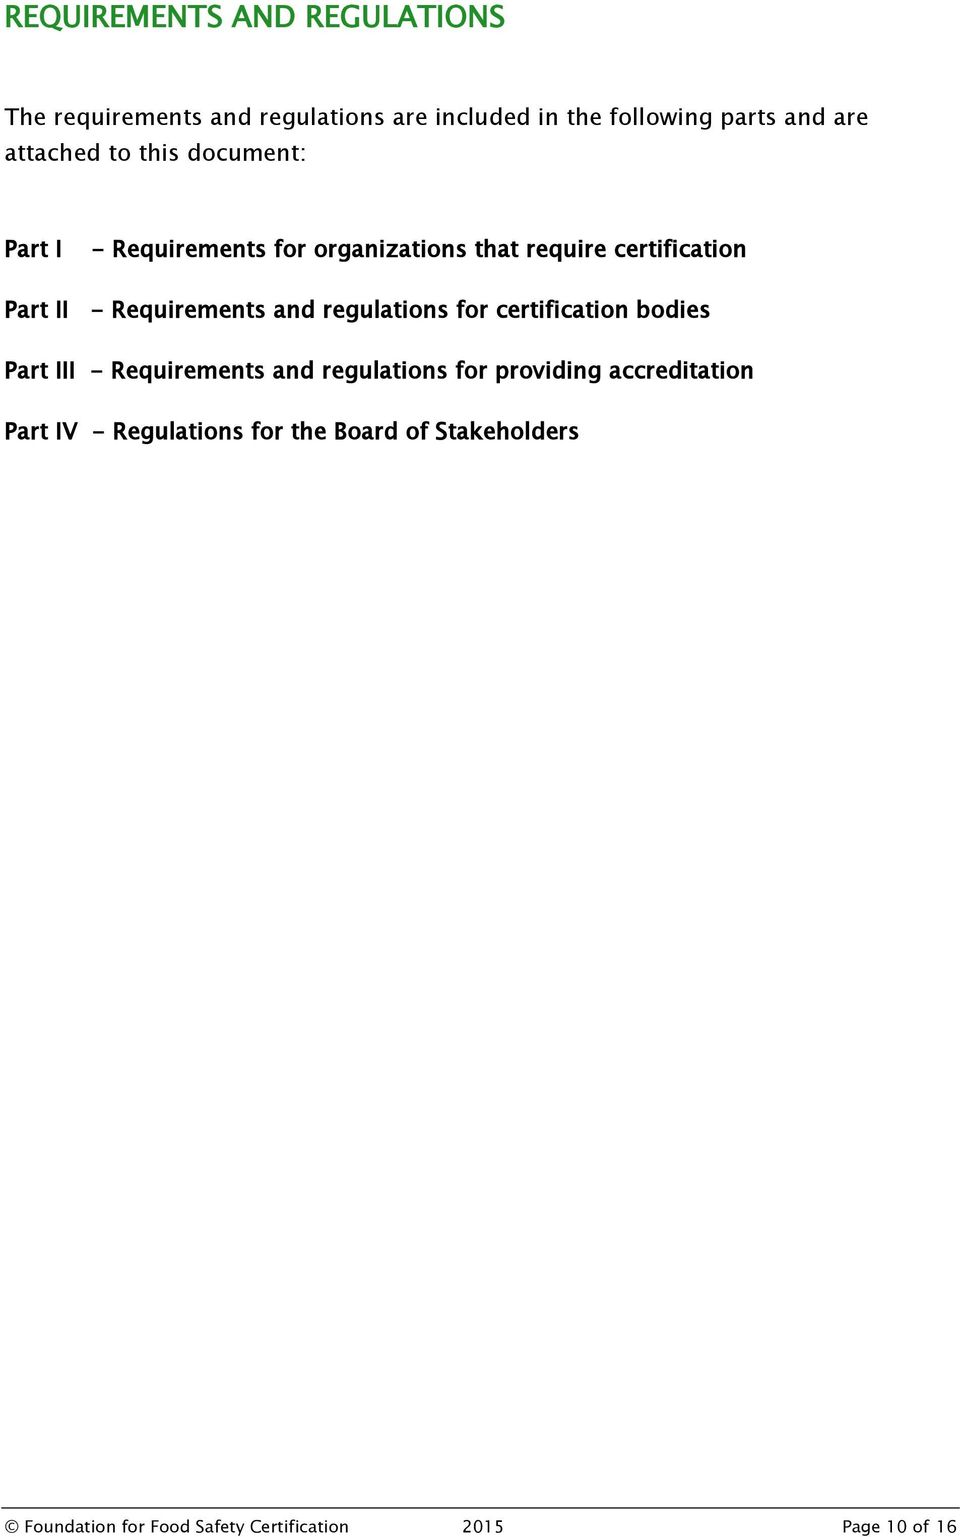 Requirements and regulations for certification bodies Part III - Requirements and regulations for providing